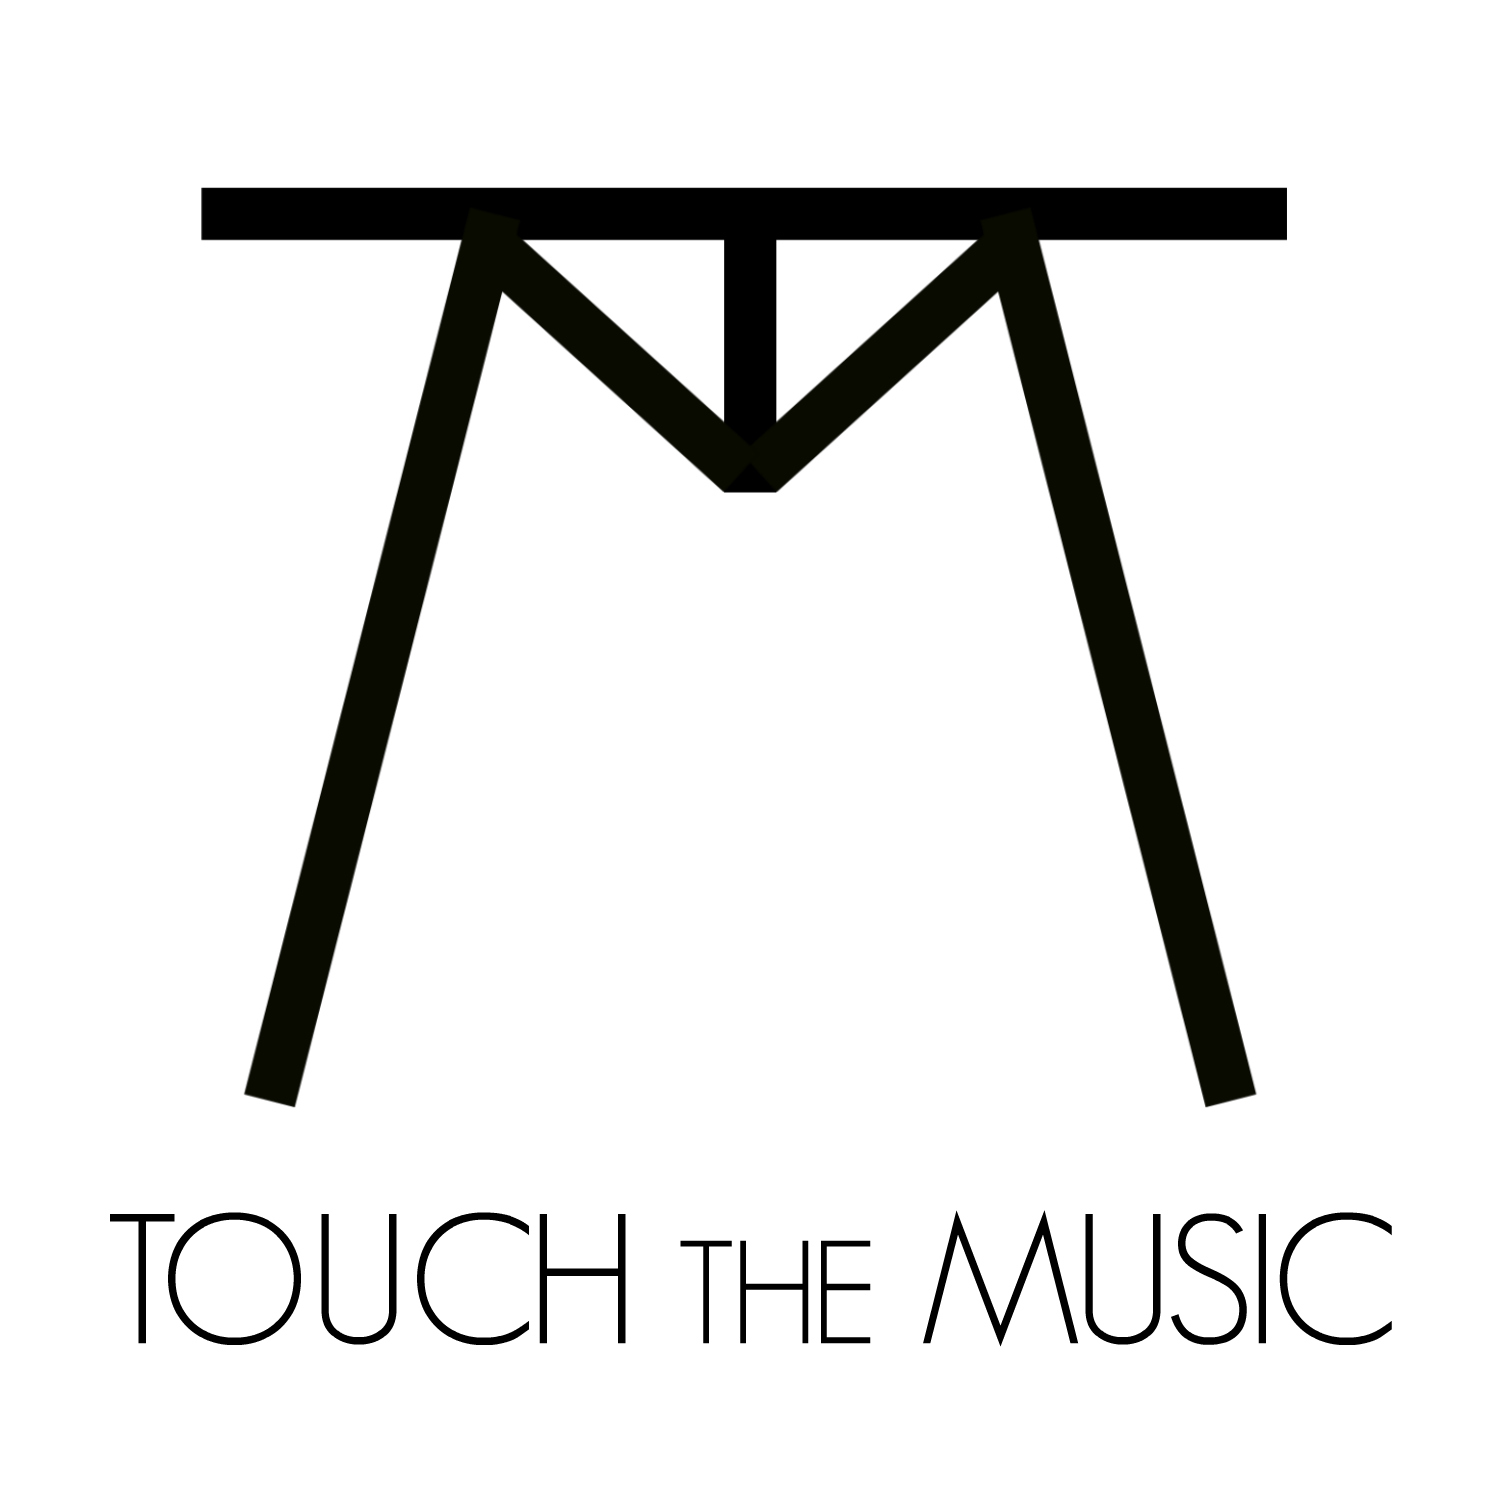 Touch the Music logo